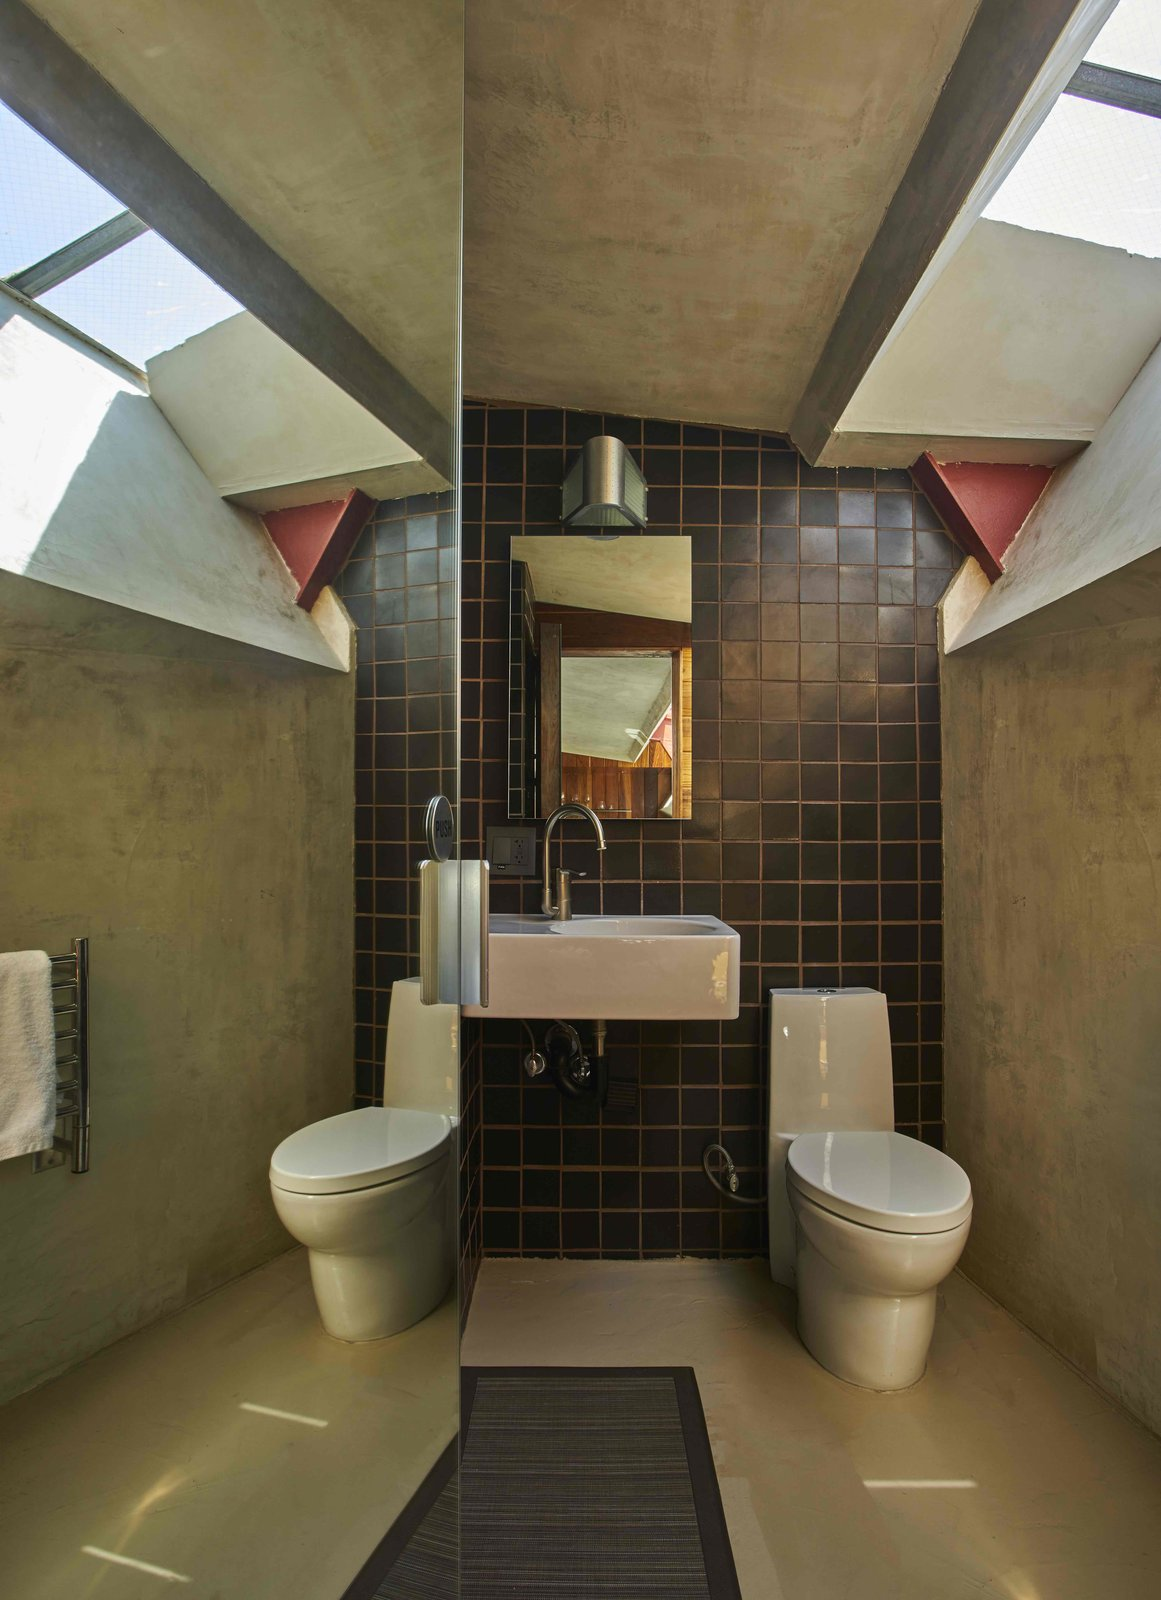 Bath Room, Ceramic Tile Wall, Wall Lighting, Wall Mount Sink, Two Piece Toilet, and Concrete Floor  The Lautner from Escape to a John Lautner Micro-Resort in the Californian Desert